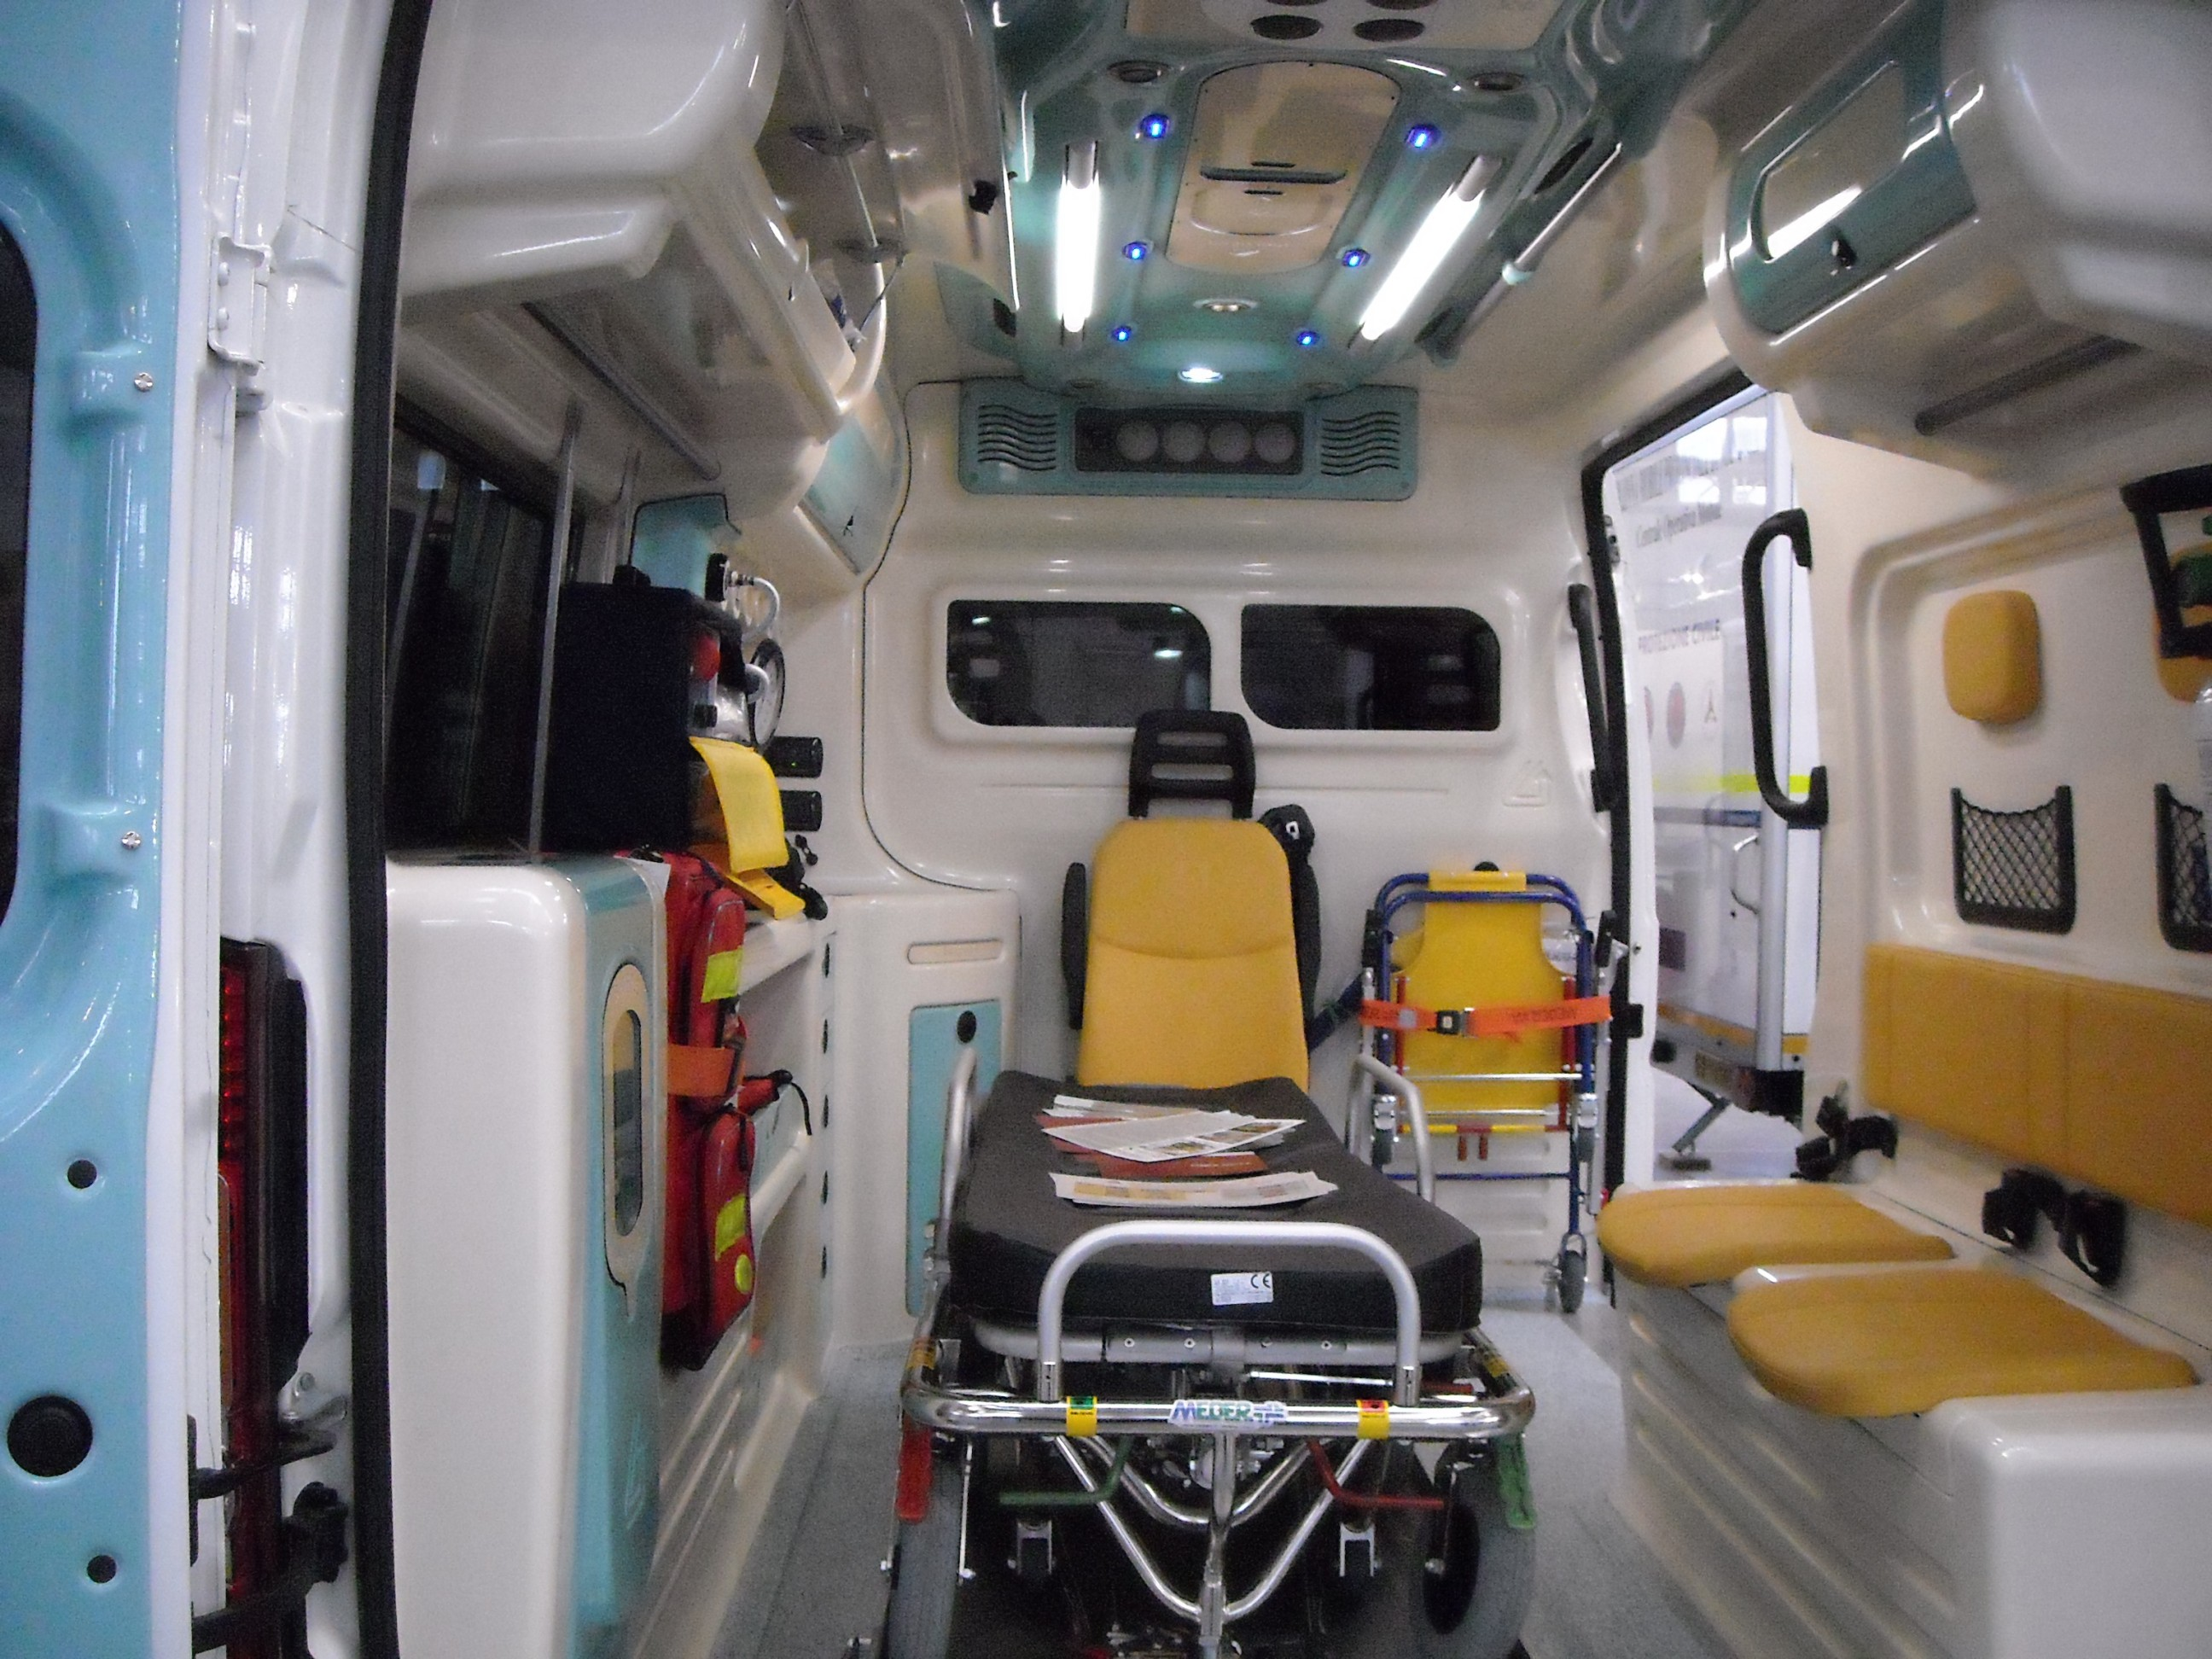 ambulances priv es page 246 auto titre. Black Bedroom Furniture Sets. Home Design Ideas